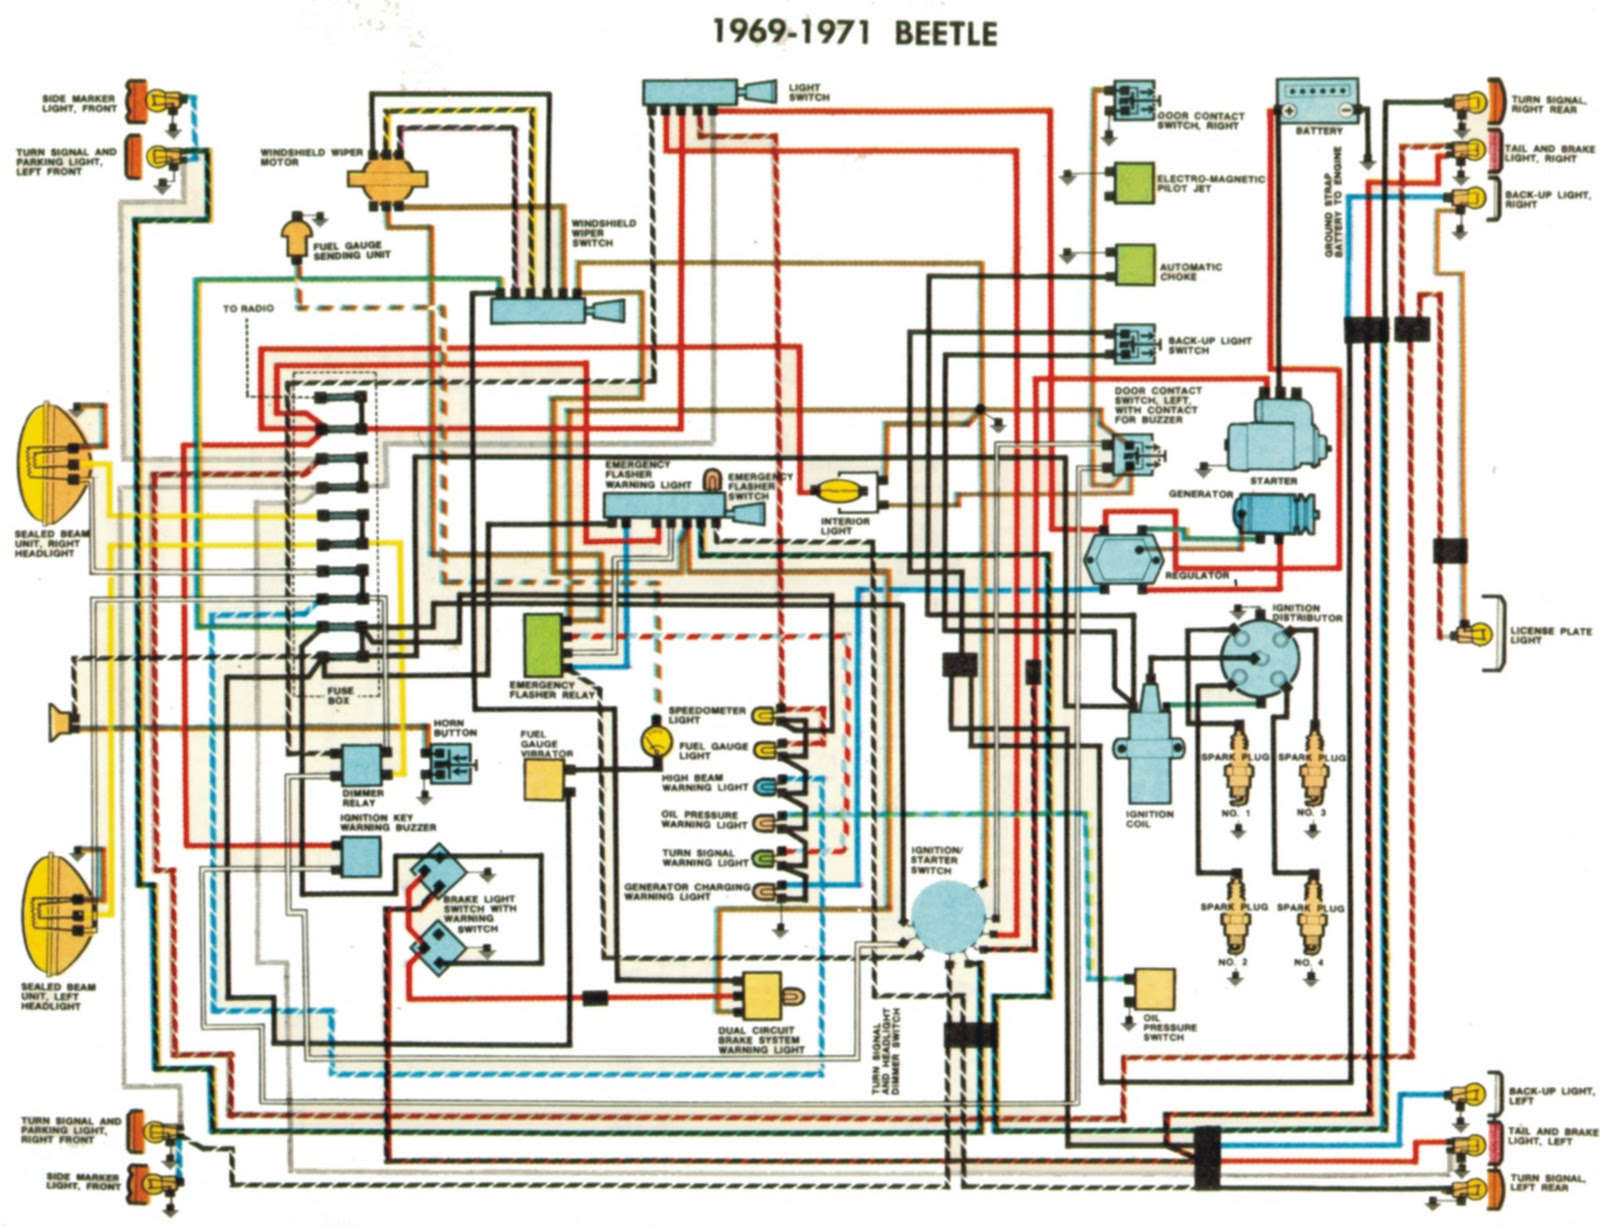 1973 vw bus ignition switch wiring diagram me 2240  1963 beetle wiring diagram download diagram  me 2240  1963 beetle wiring diagram